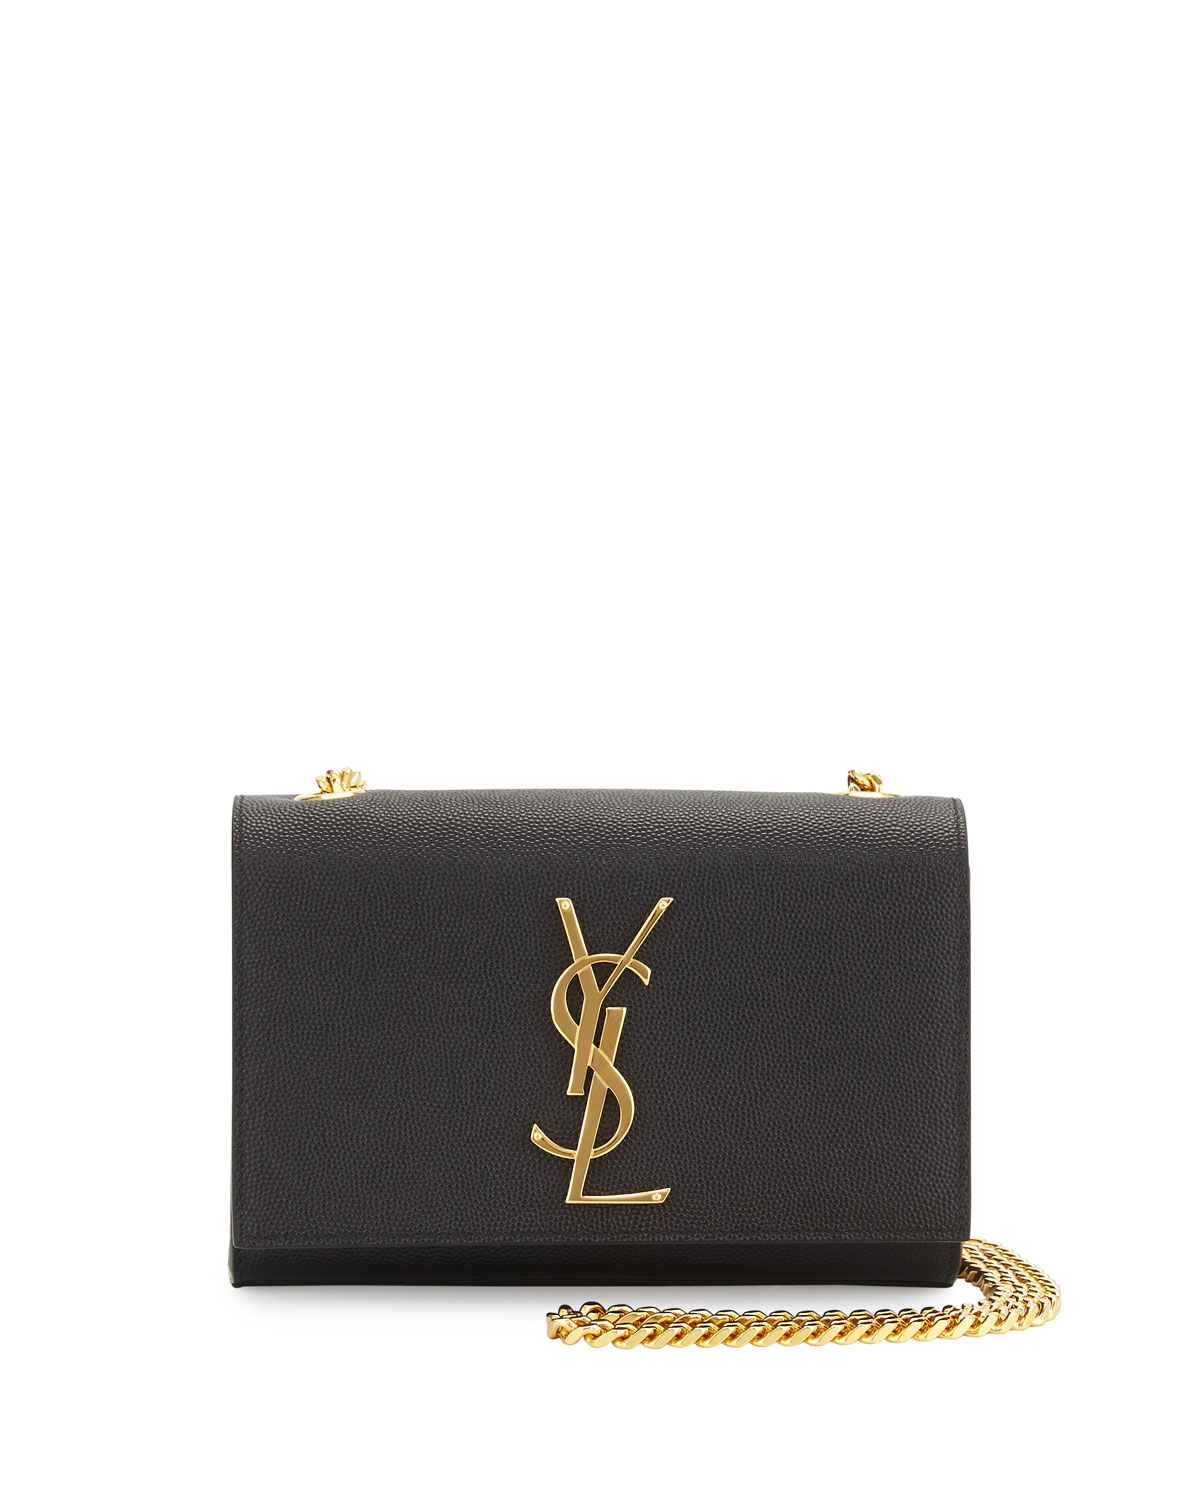 Saint Laurent Kate Monogram YSL Leather Crossbody Bag, Black ... 516eb1c825